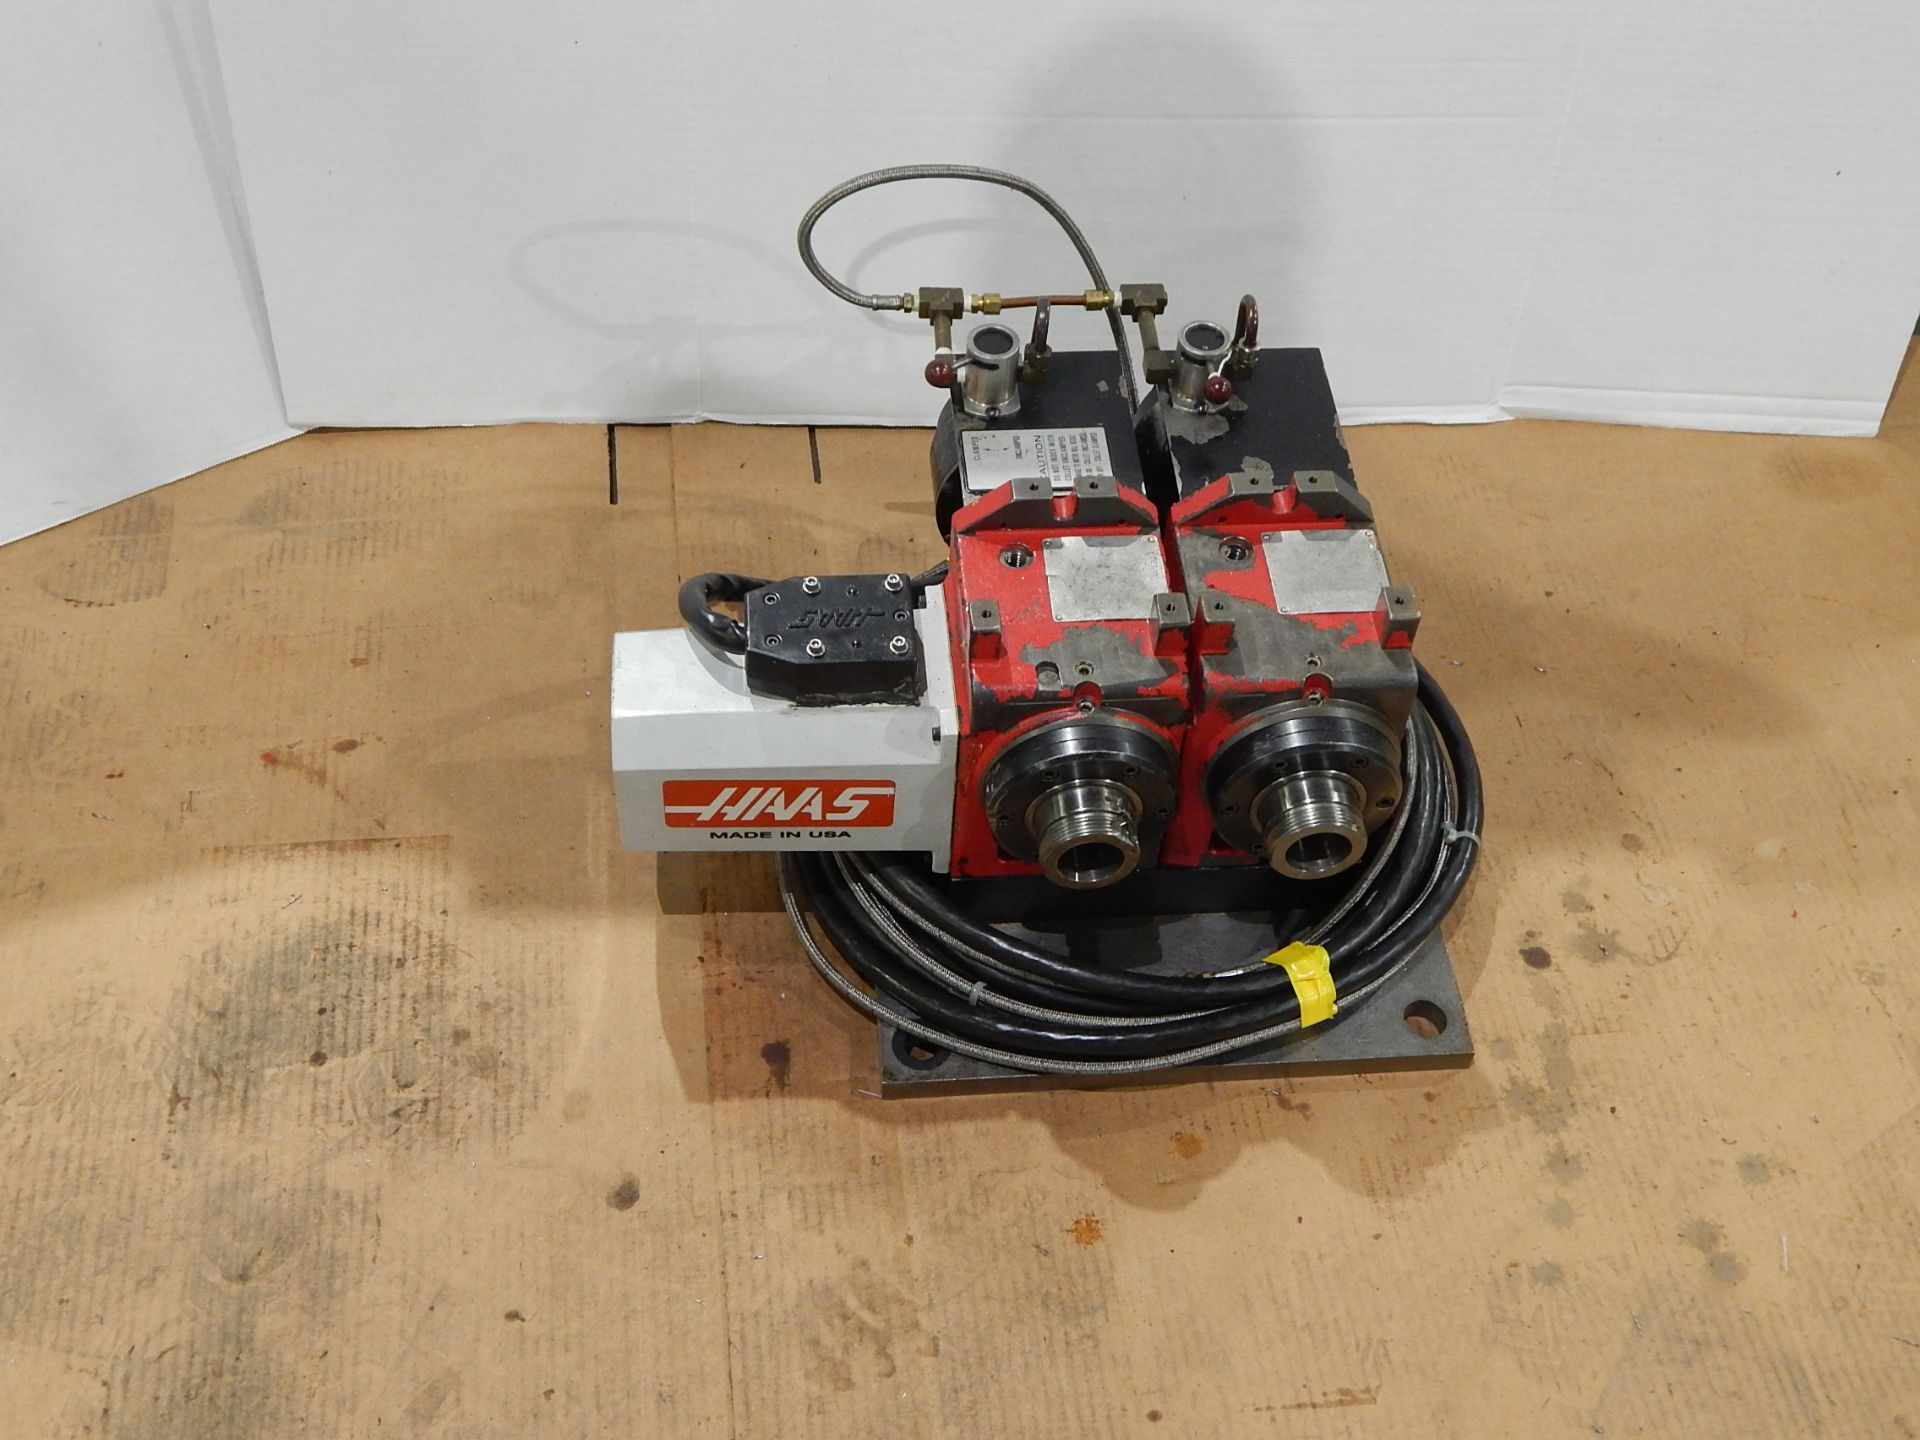 Haas HA5C-2 CNC Indexer, s/n 700130B, (2) 5C Programmable Spindles - Image 2 of 6